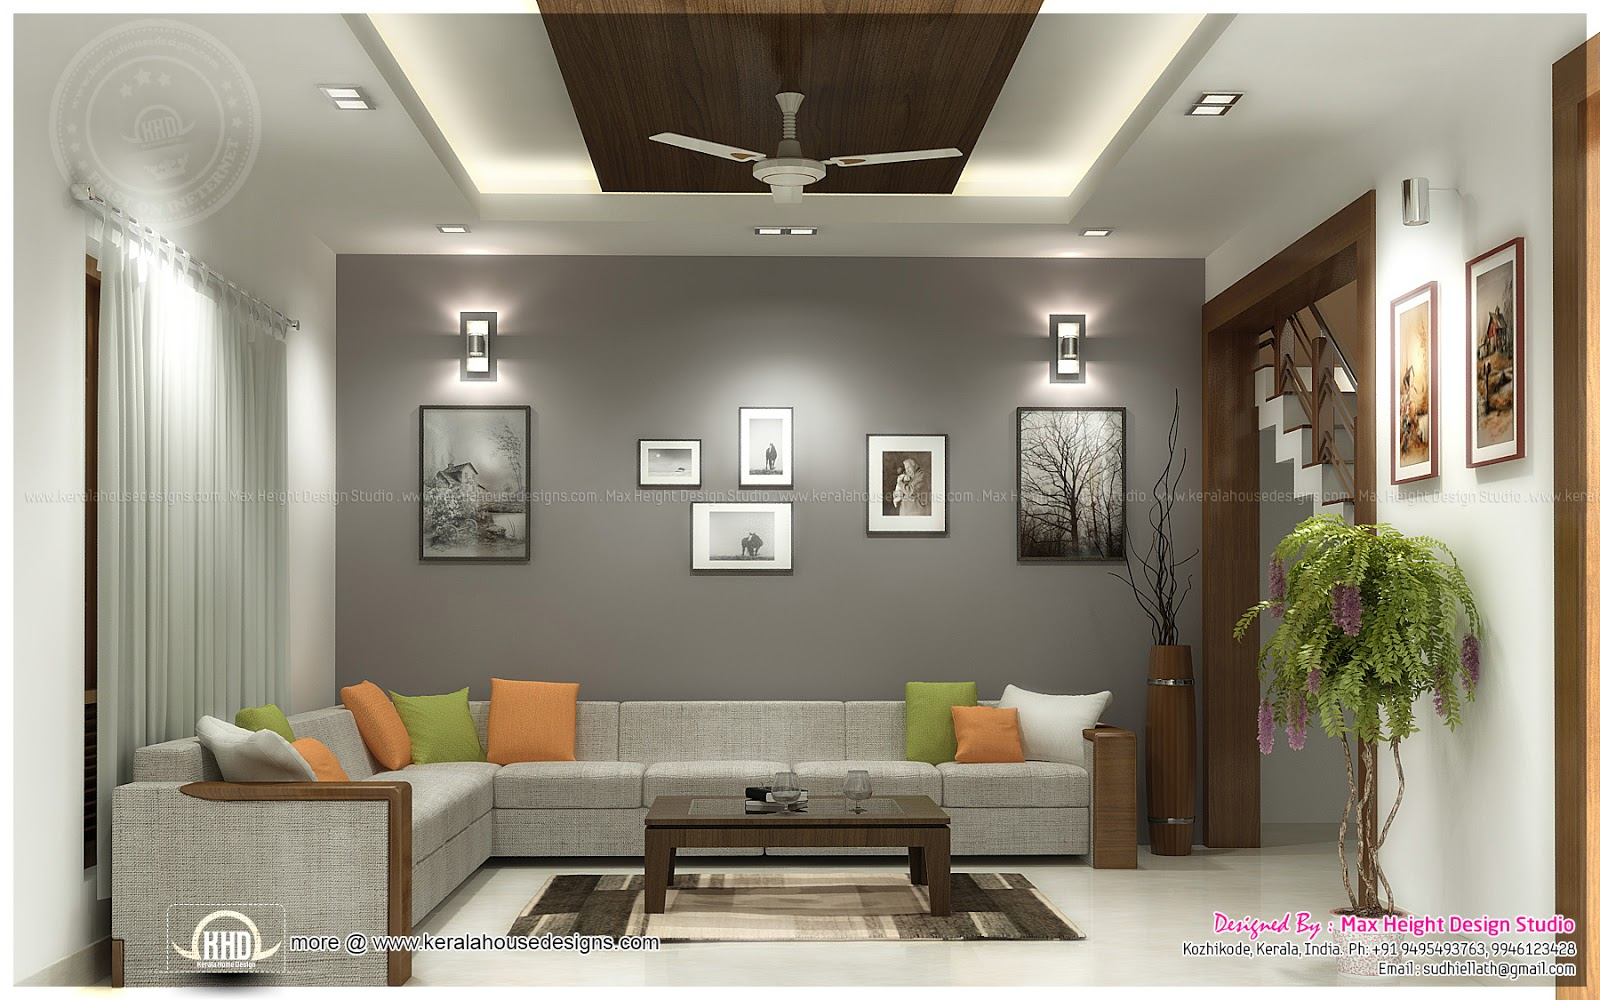 Beautiful interior ideas for home kerala home design and for House plans with interior photos